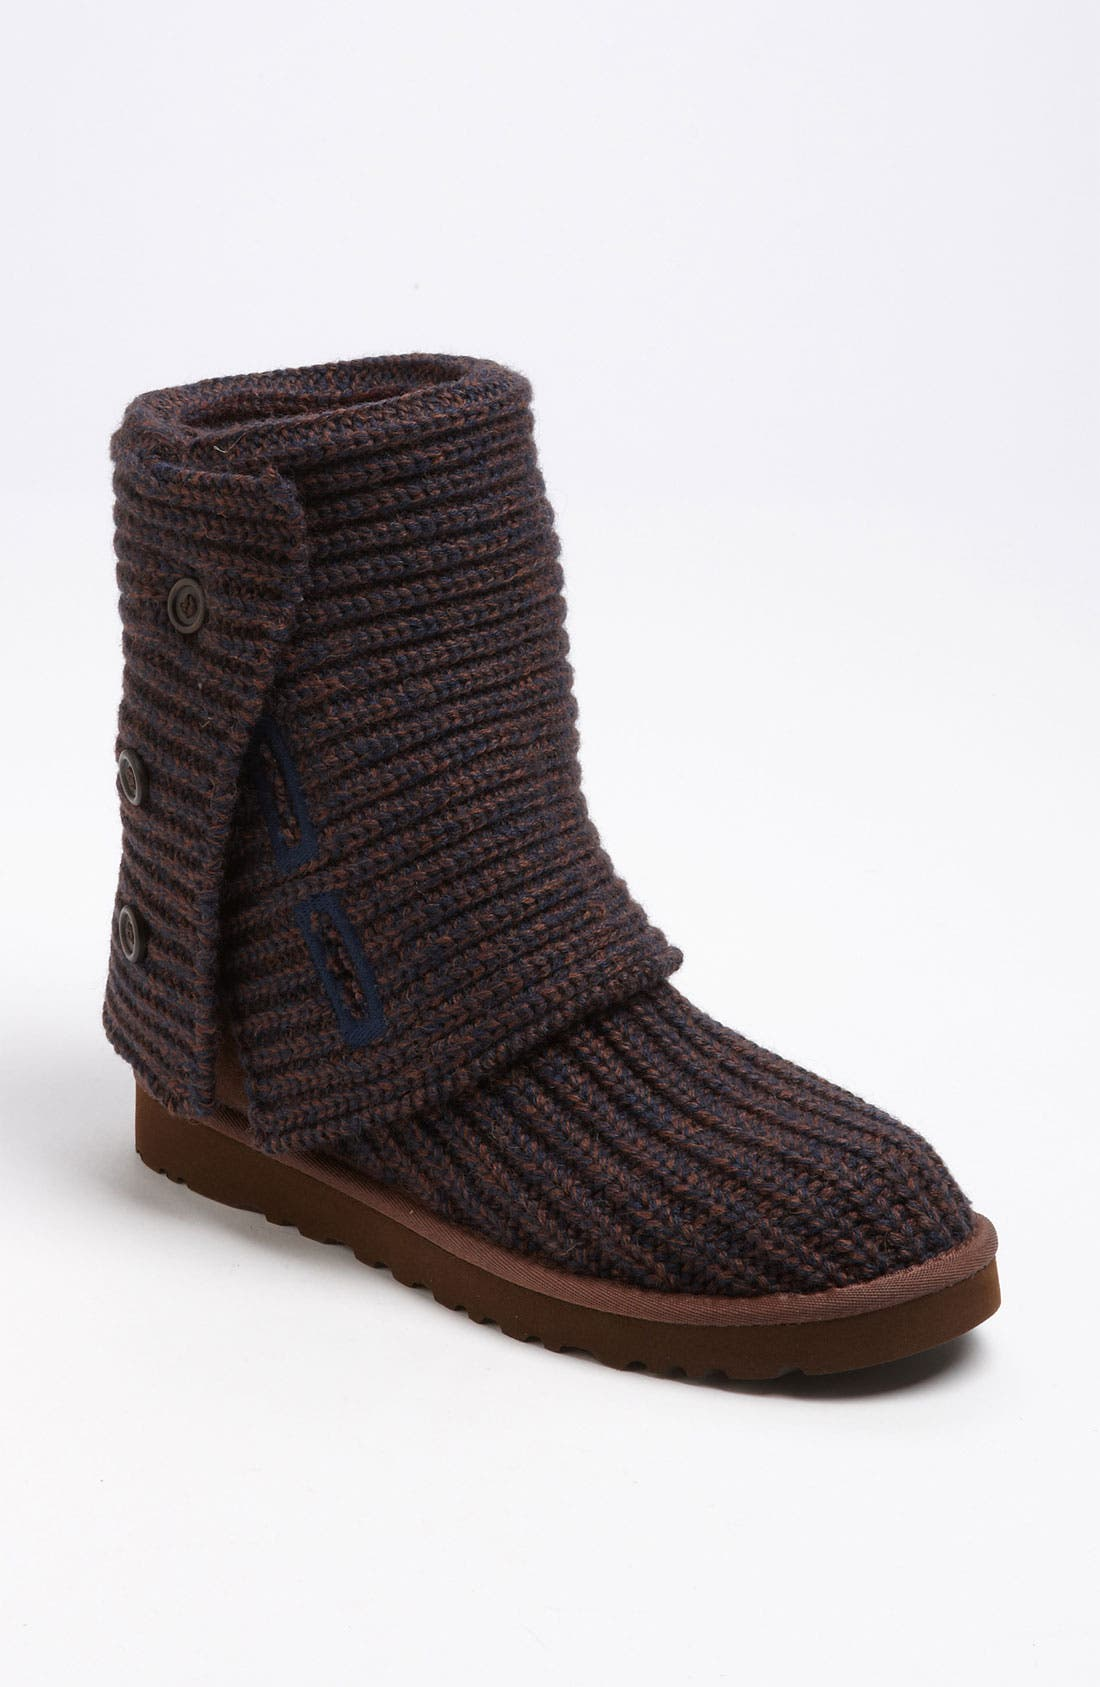 Alternate Image 1 Selected - UGG® 'Cardy' Classic Knit Boot (Women)